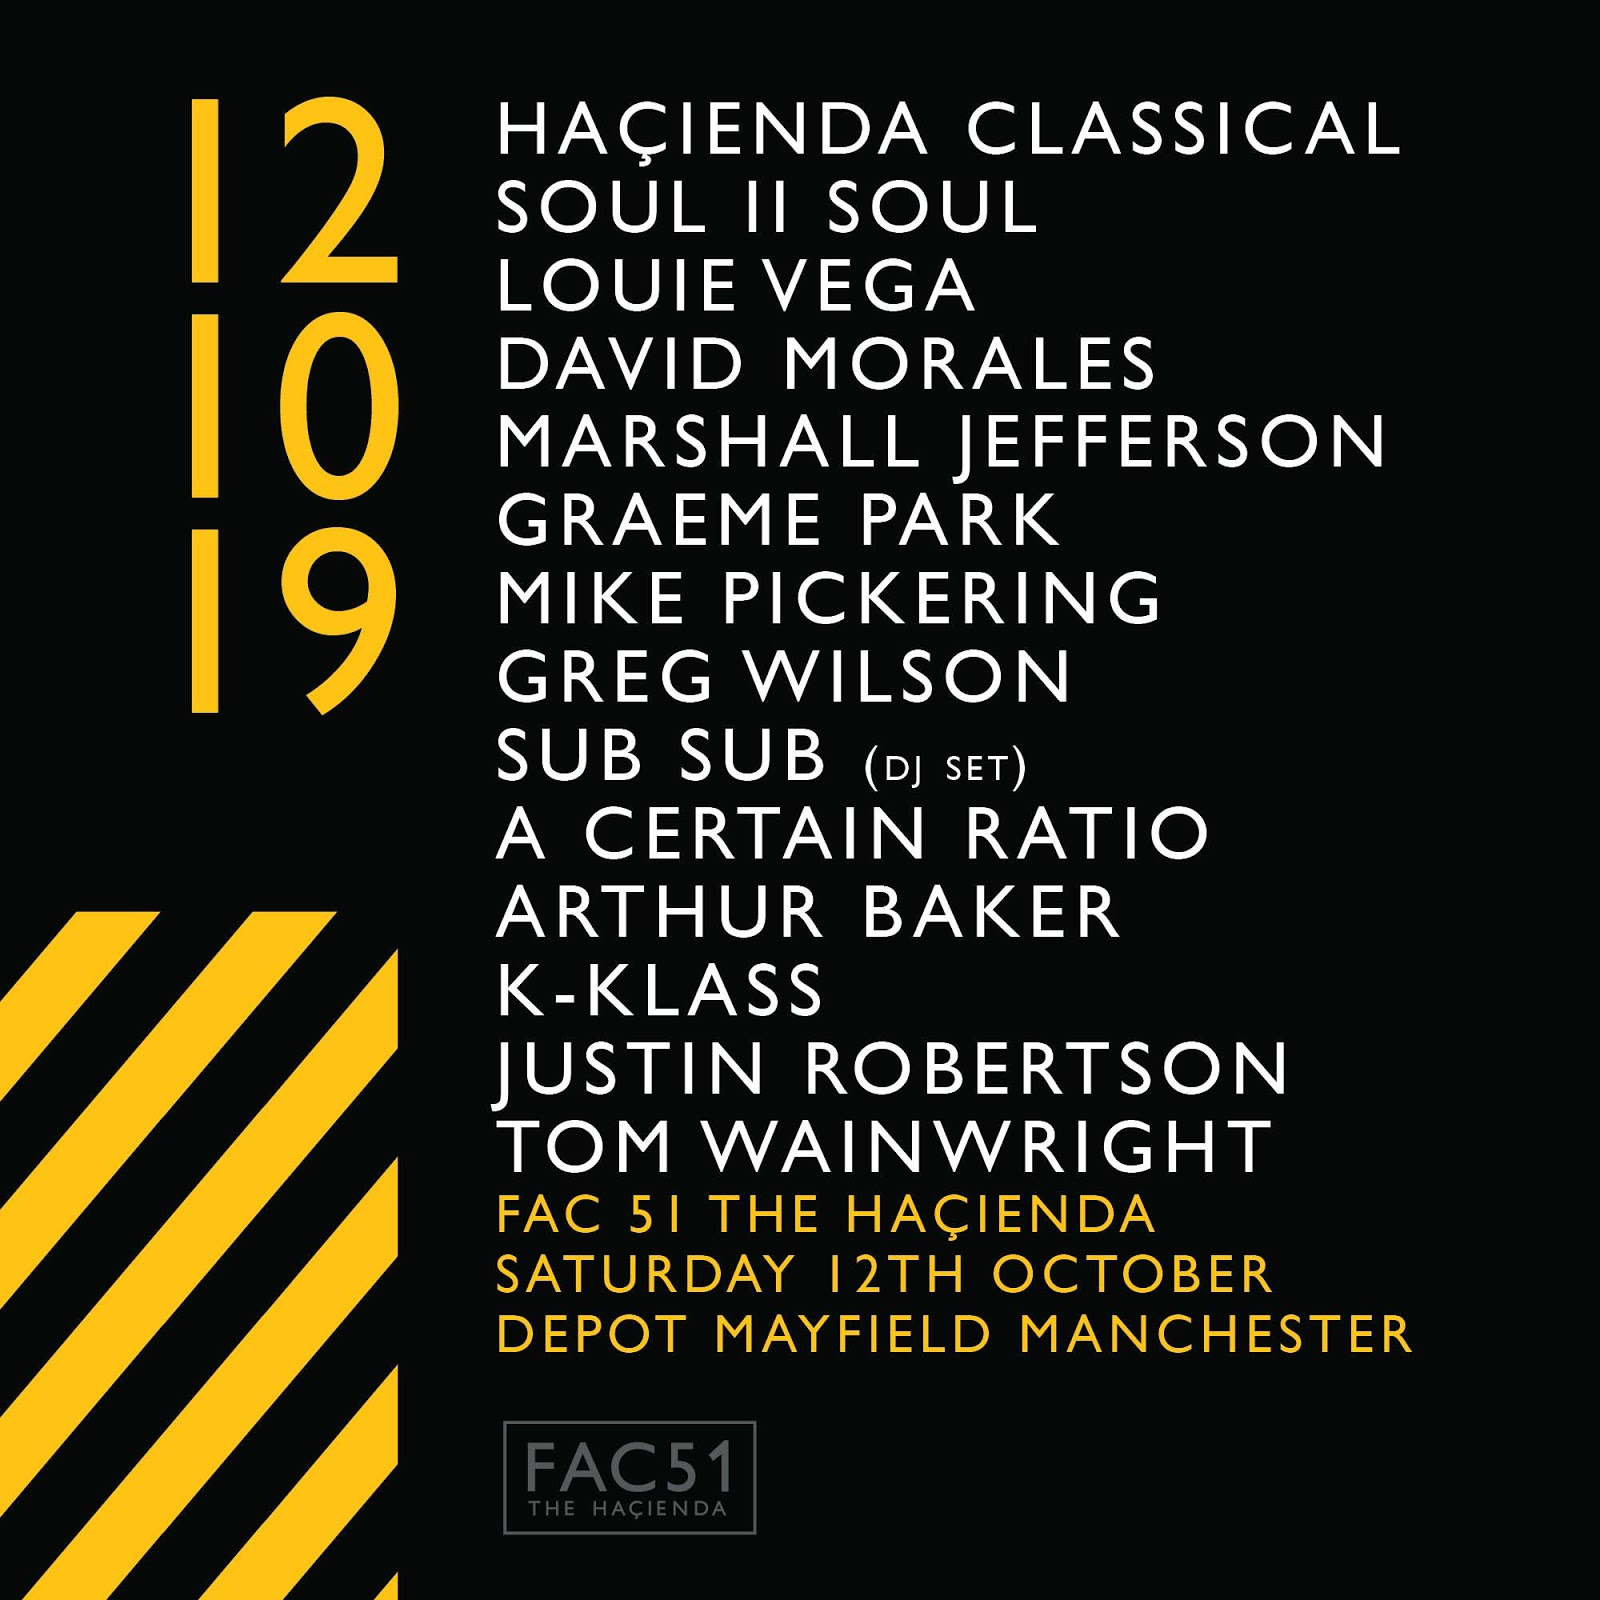 ACR Gigography - 12 October 2019, Warehouse Project, Mayfield Depot, Manchester